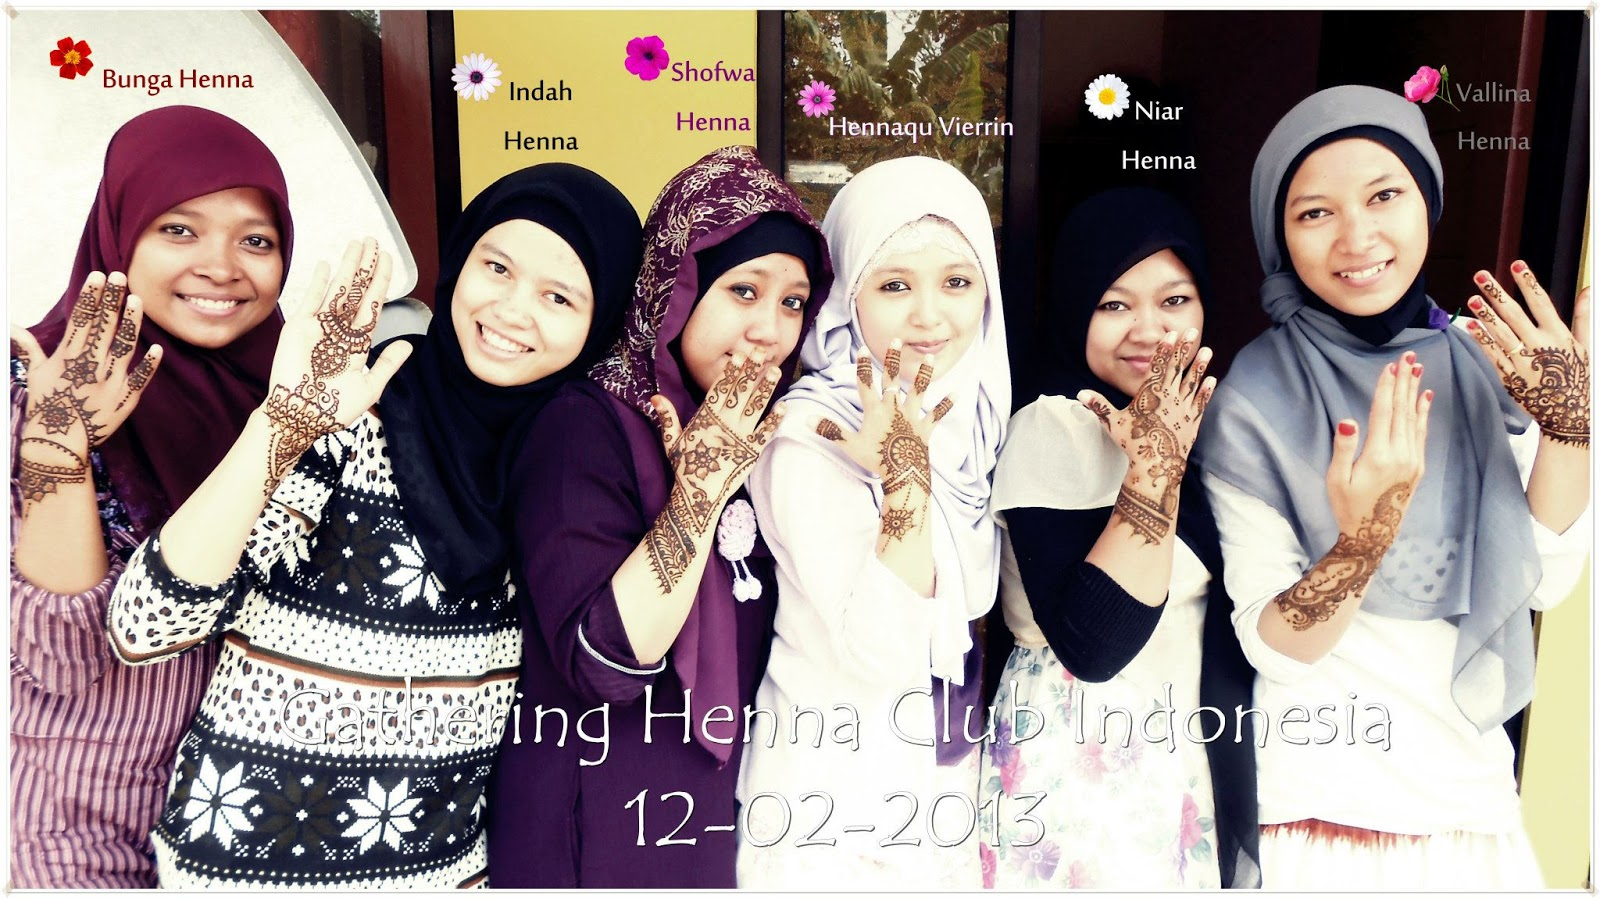 INDAH HENNA DESIGN Gatering Henna Club Indonesia